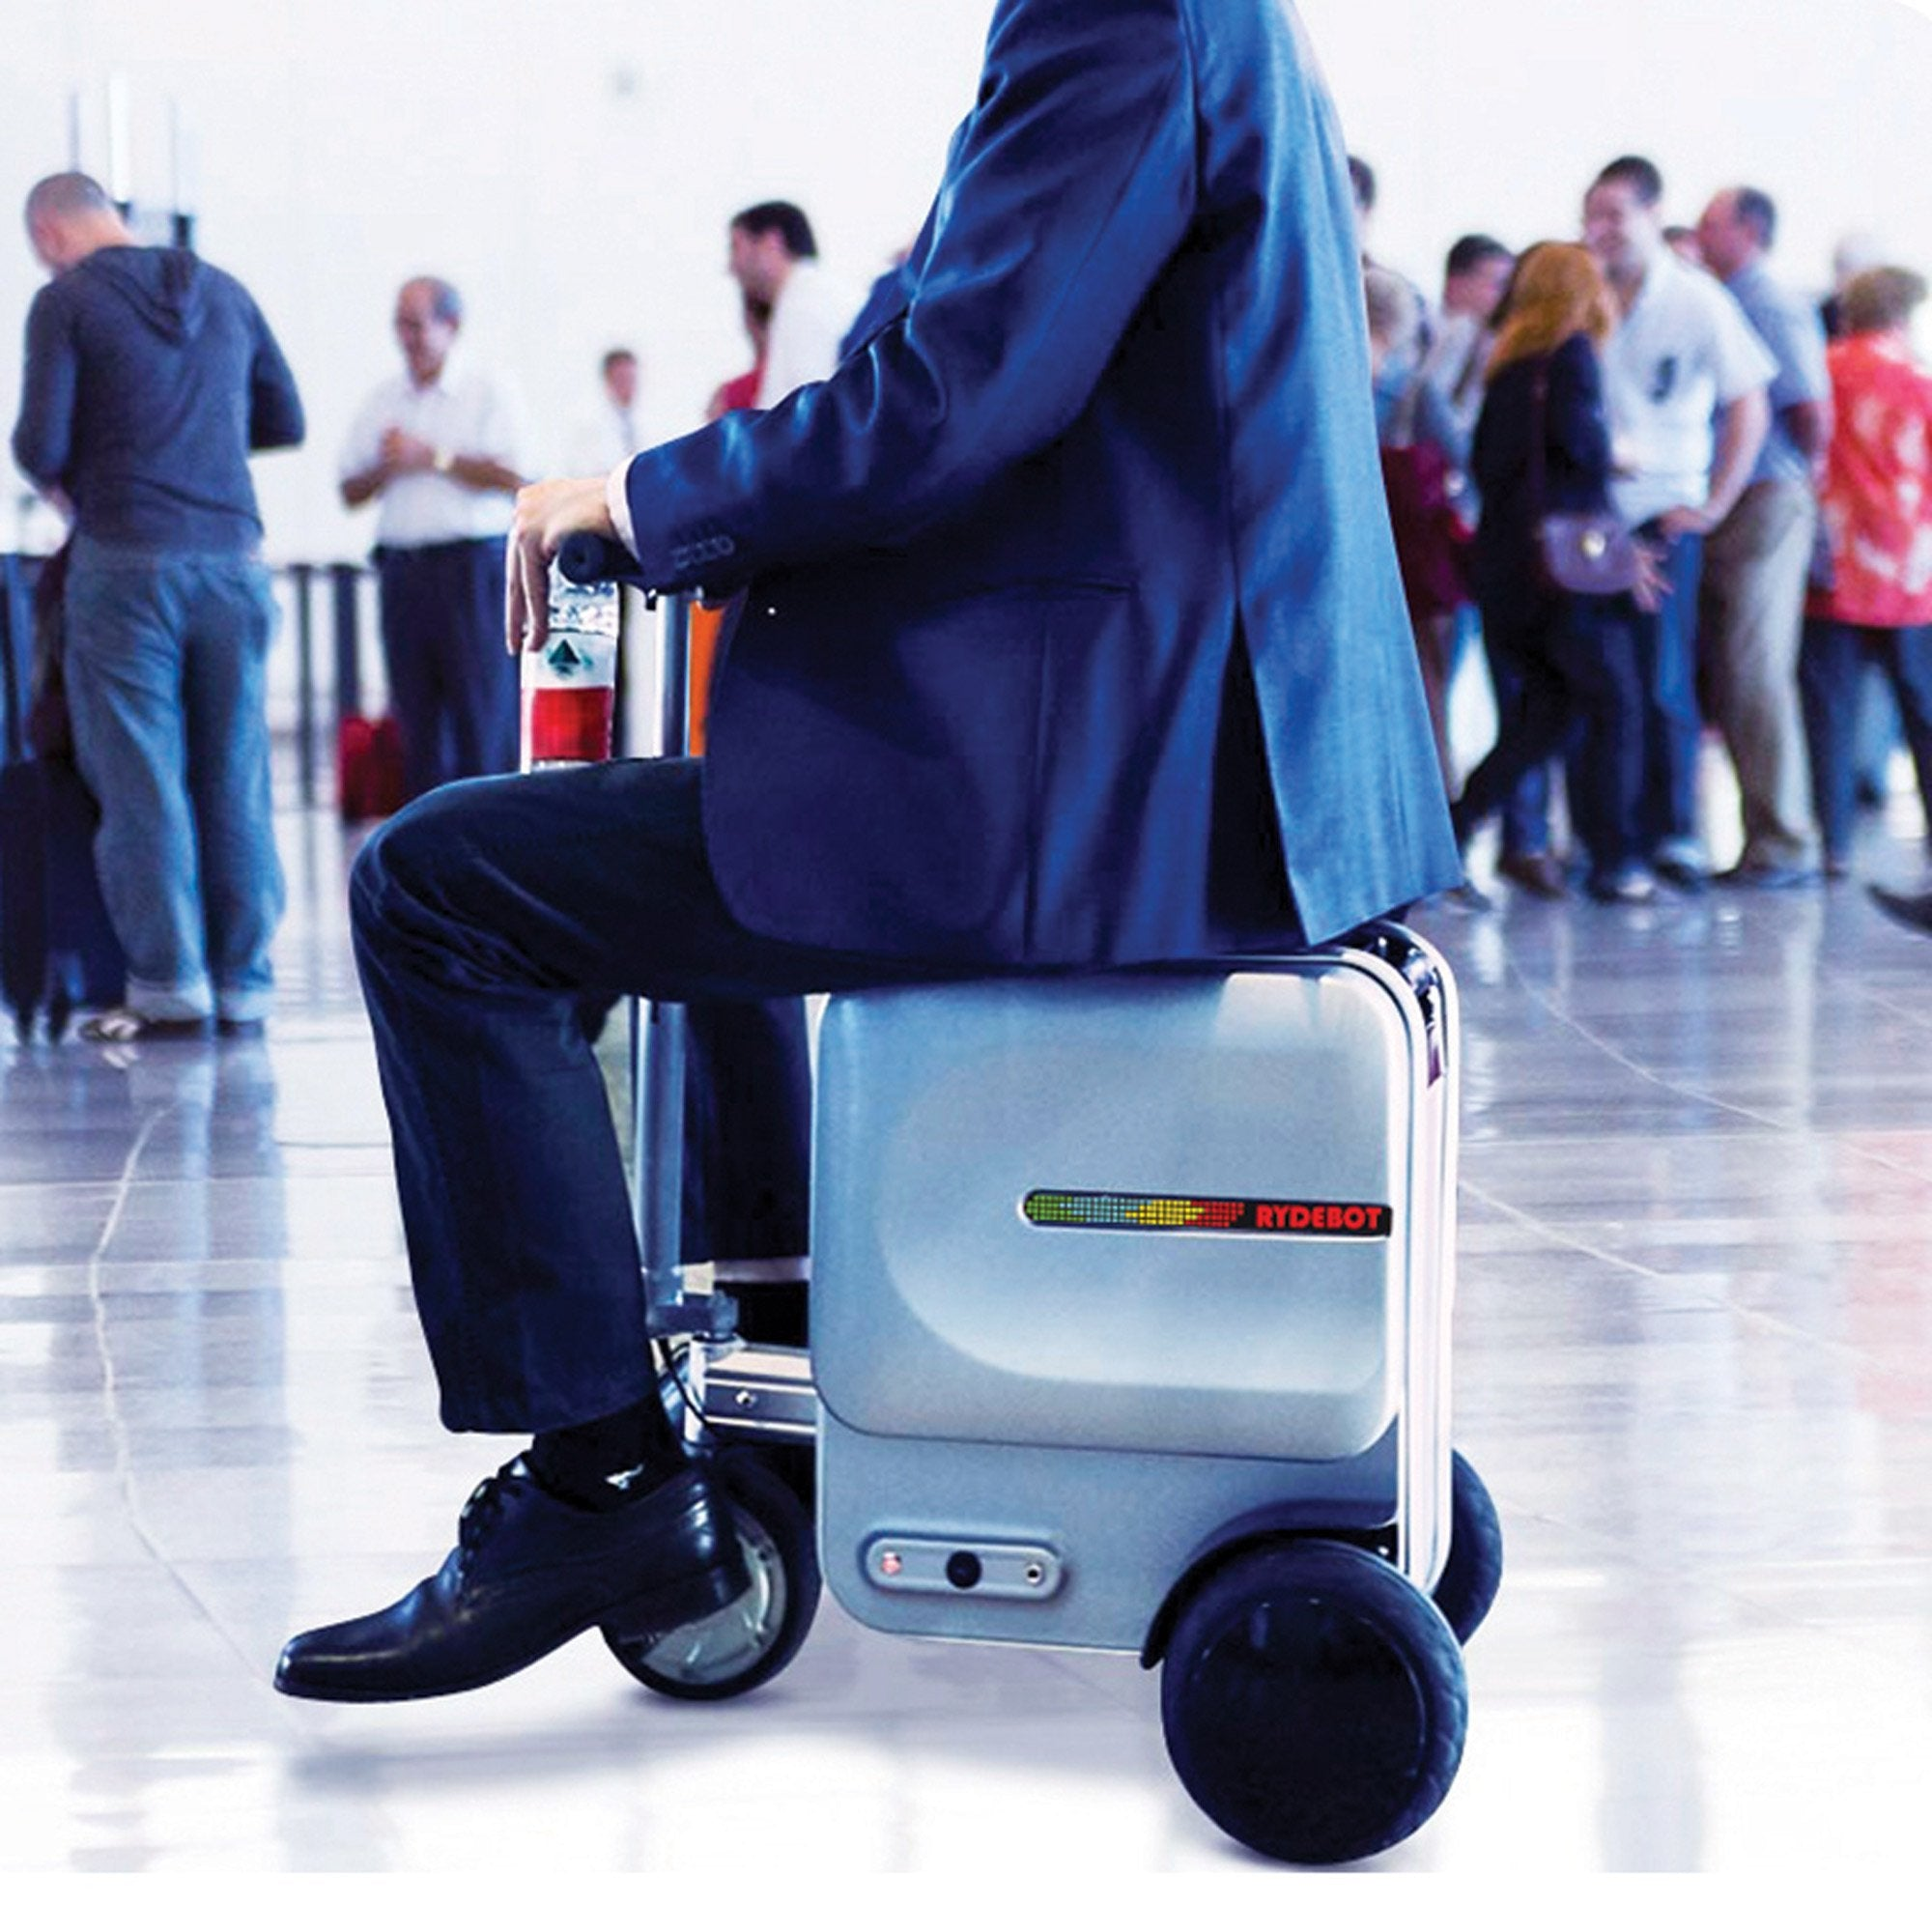 Rydebot Cavallo Smart Ride-On Luggage in Silver